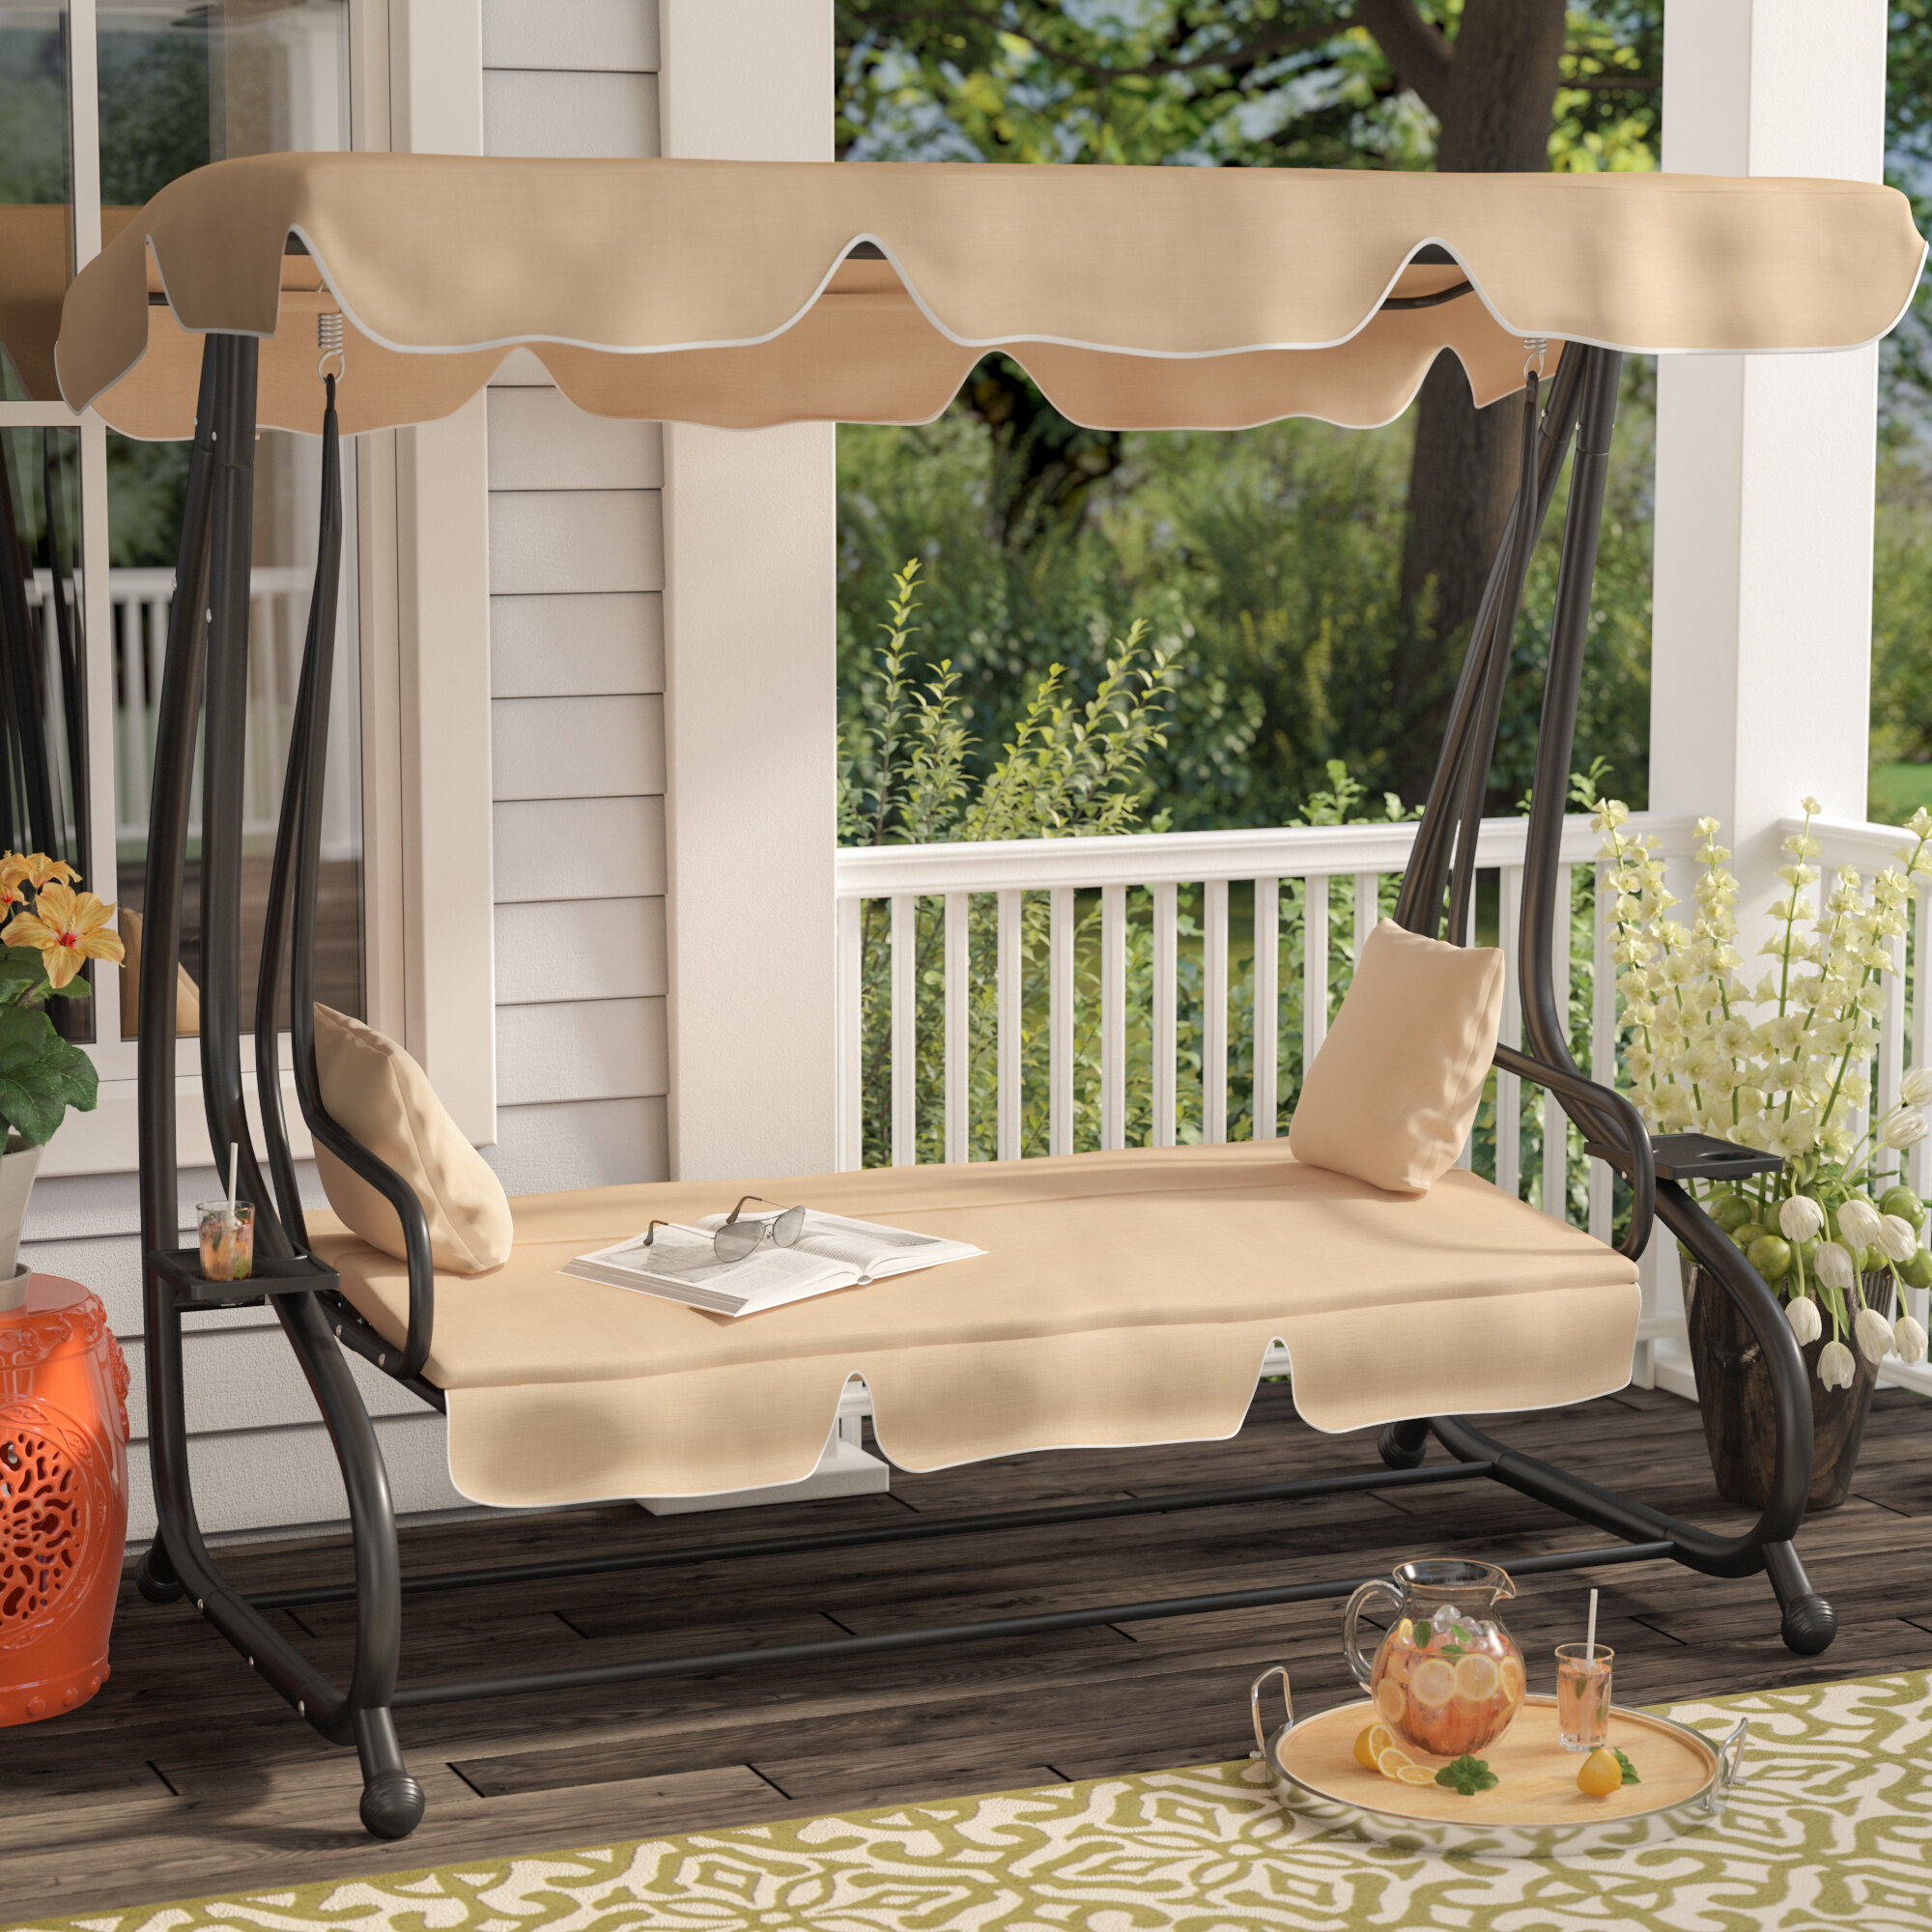 Marvelous Winston Porter Whitney Outdoor Covered Porch Swing With Stand U0026 Reviews |  Wayfair